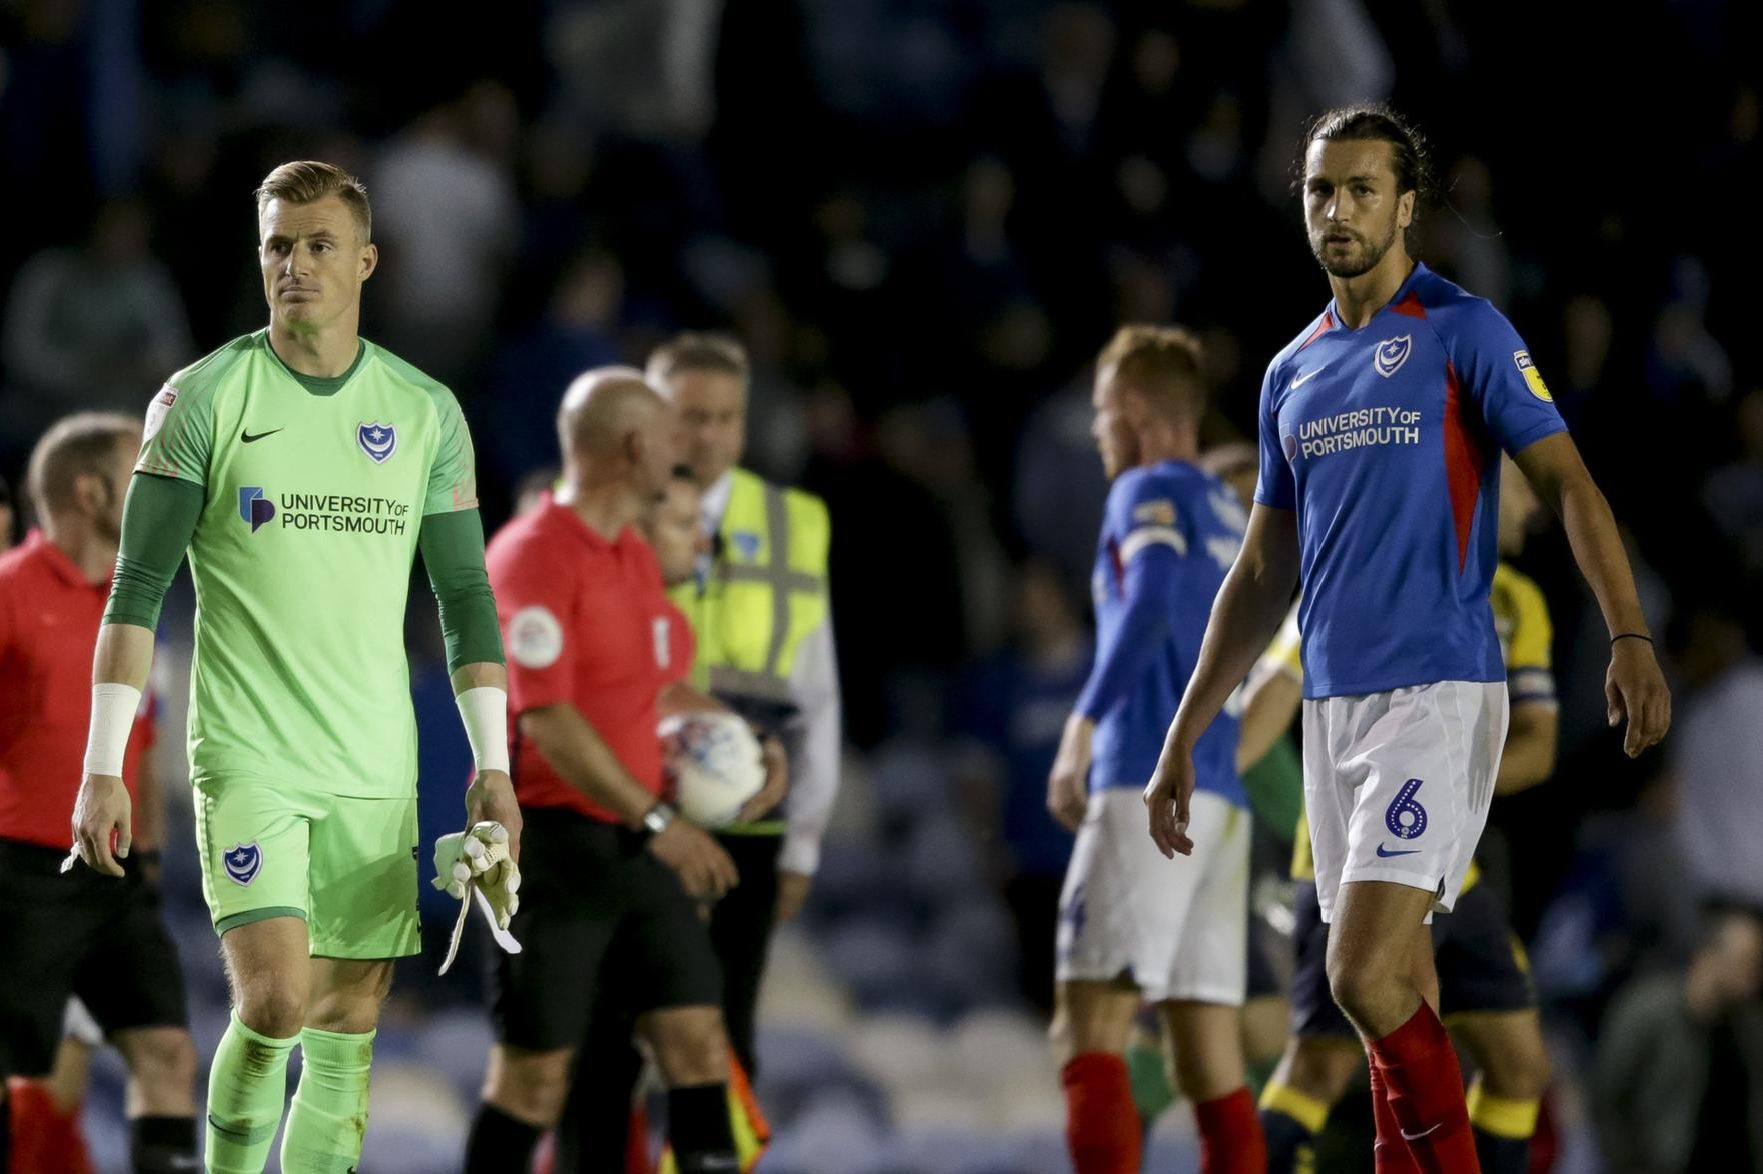 Craig MacGillivray and Christian Burgess dejected after Pompey's draw with Coventry. Picture: Robin Jones.